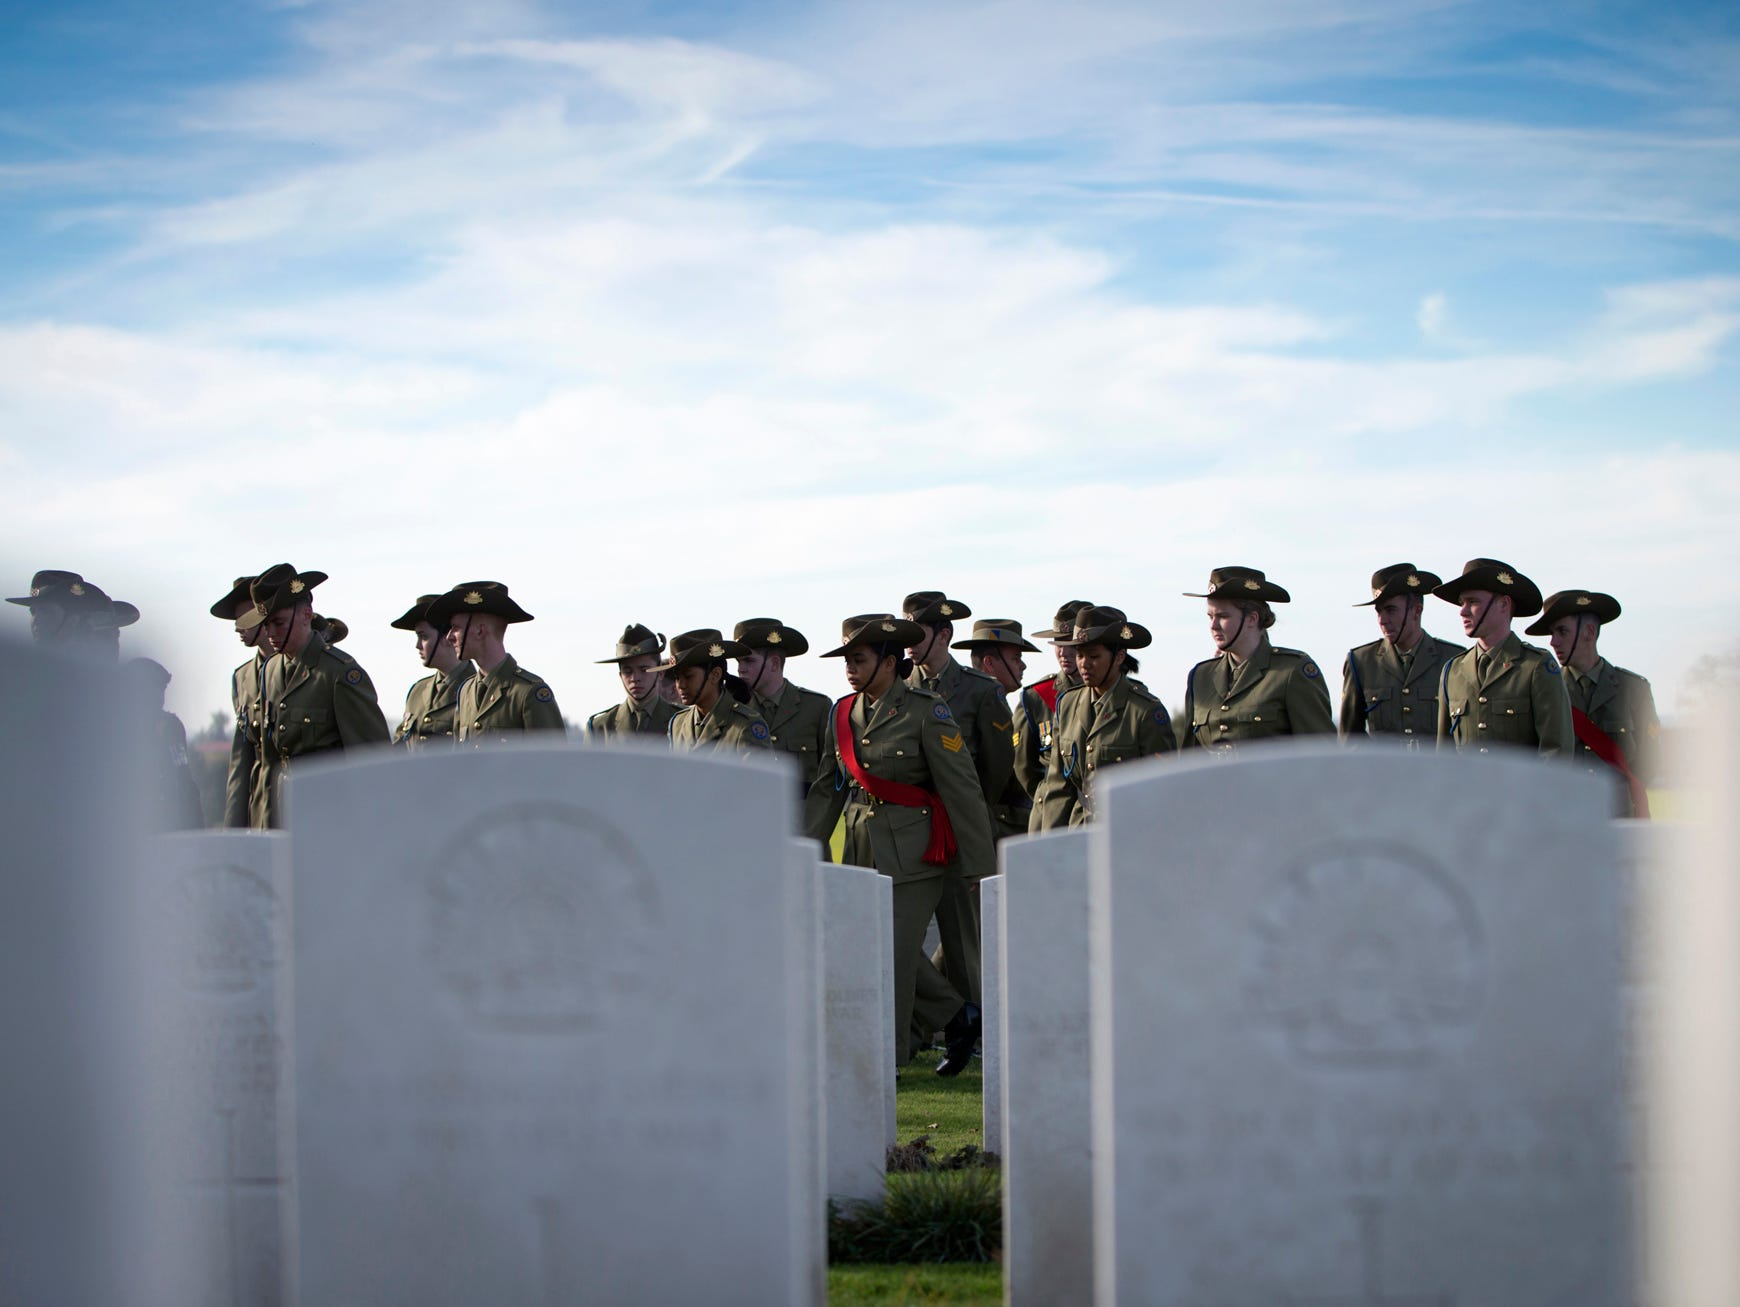 Australian soldiers gather to participate in the reburial of two unidentified World War I Australian soldiers and one British Soldier at Tyne Cot cemetery in Zonnebeke, Belgium, Tuesday, Nov. 6, 2018. The soldiers were found in Belgium during construction works in 2016. (AP Photo/Virginia Mayo)